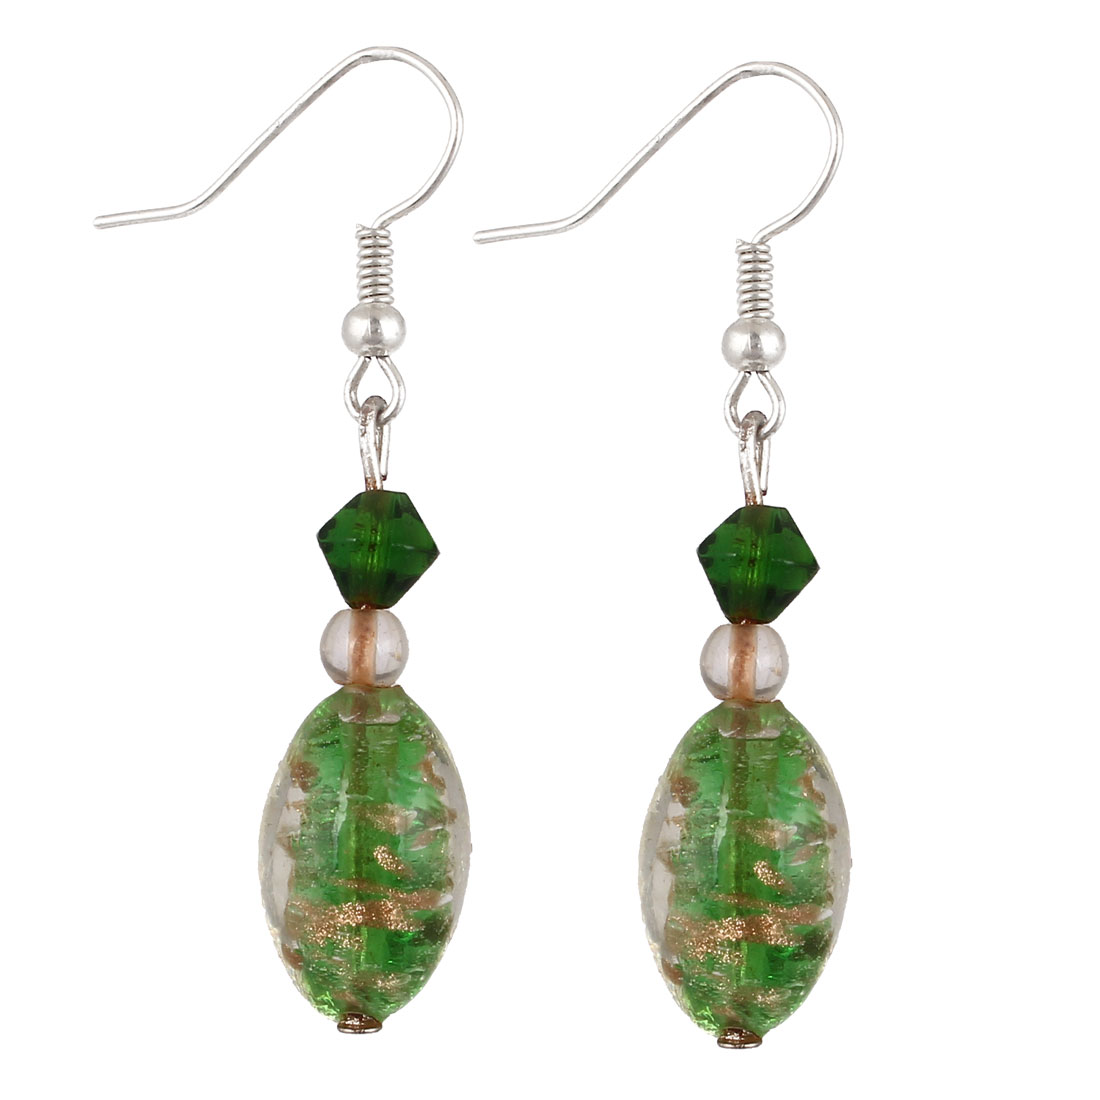 Lady Plastic Beaded Rhombus Pendant Fish Hook Earrings Green Pair